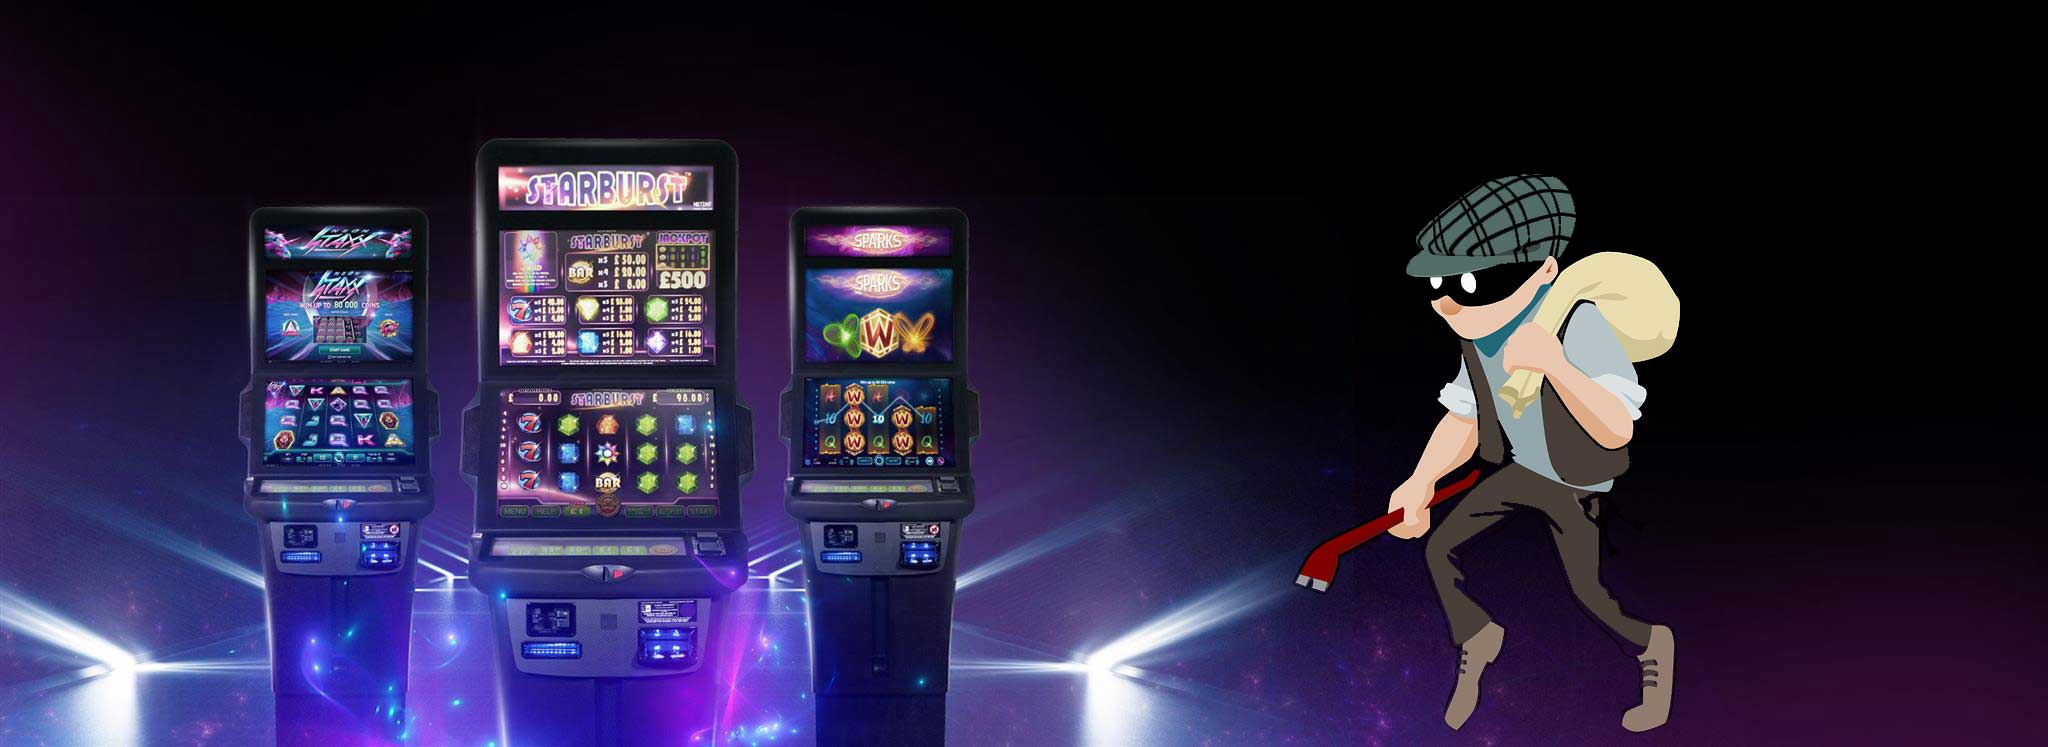 Thief hacking slot machines with online slots